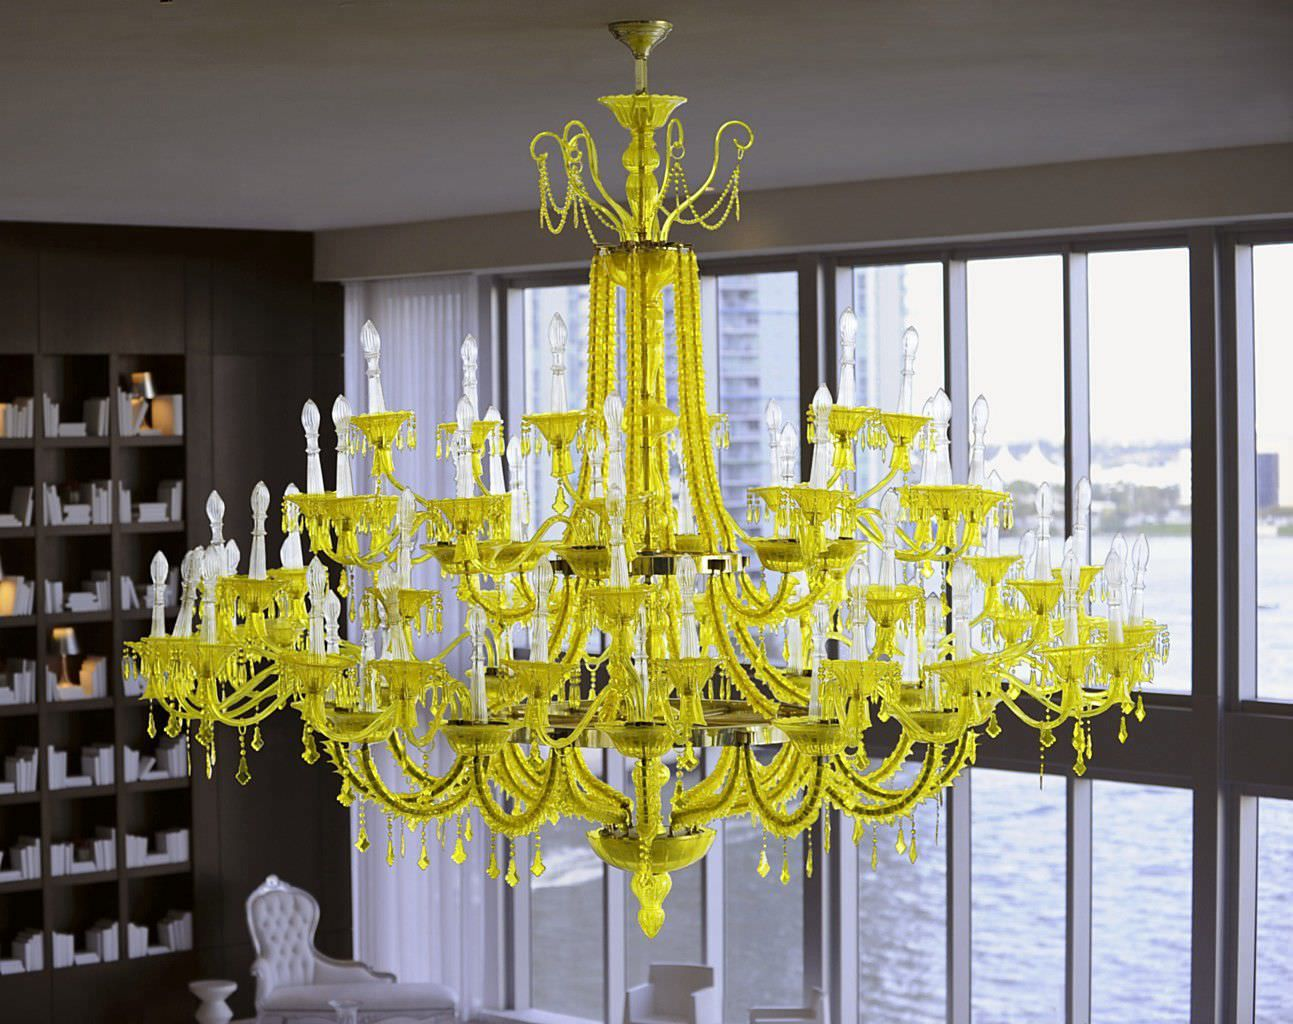 Original Design Blown Glass Chandeliers Handmade Philippe Starck